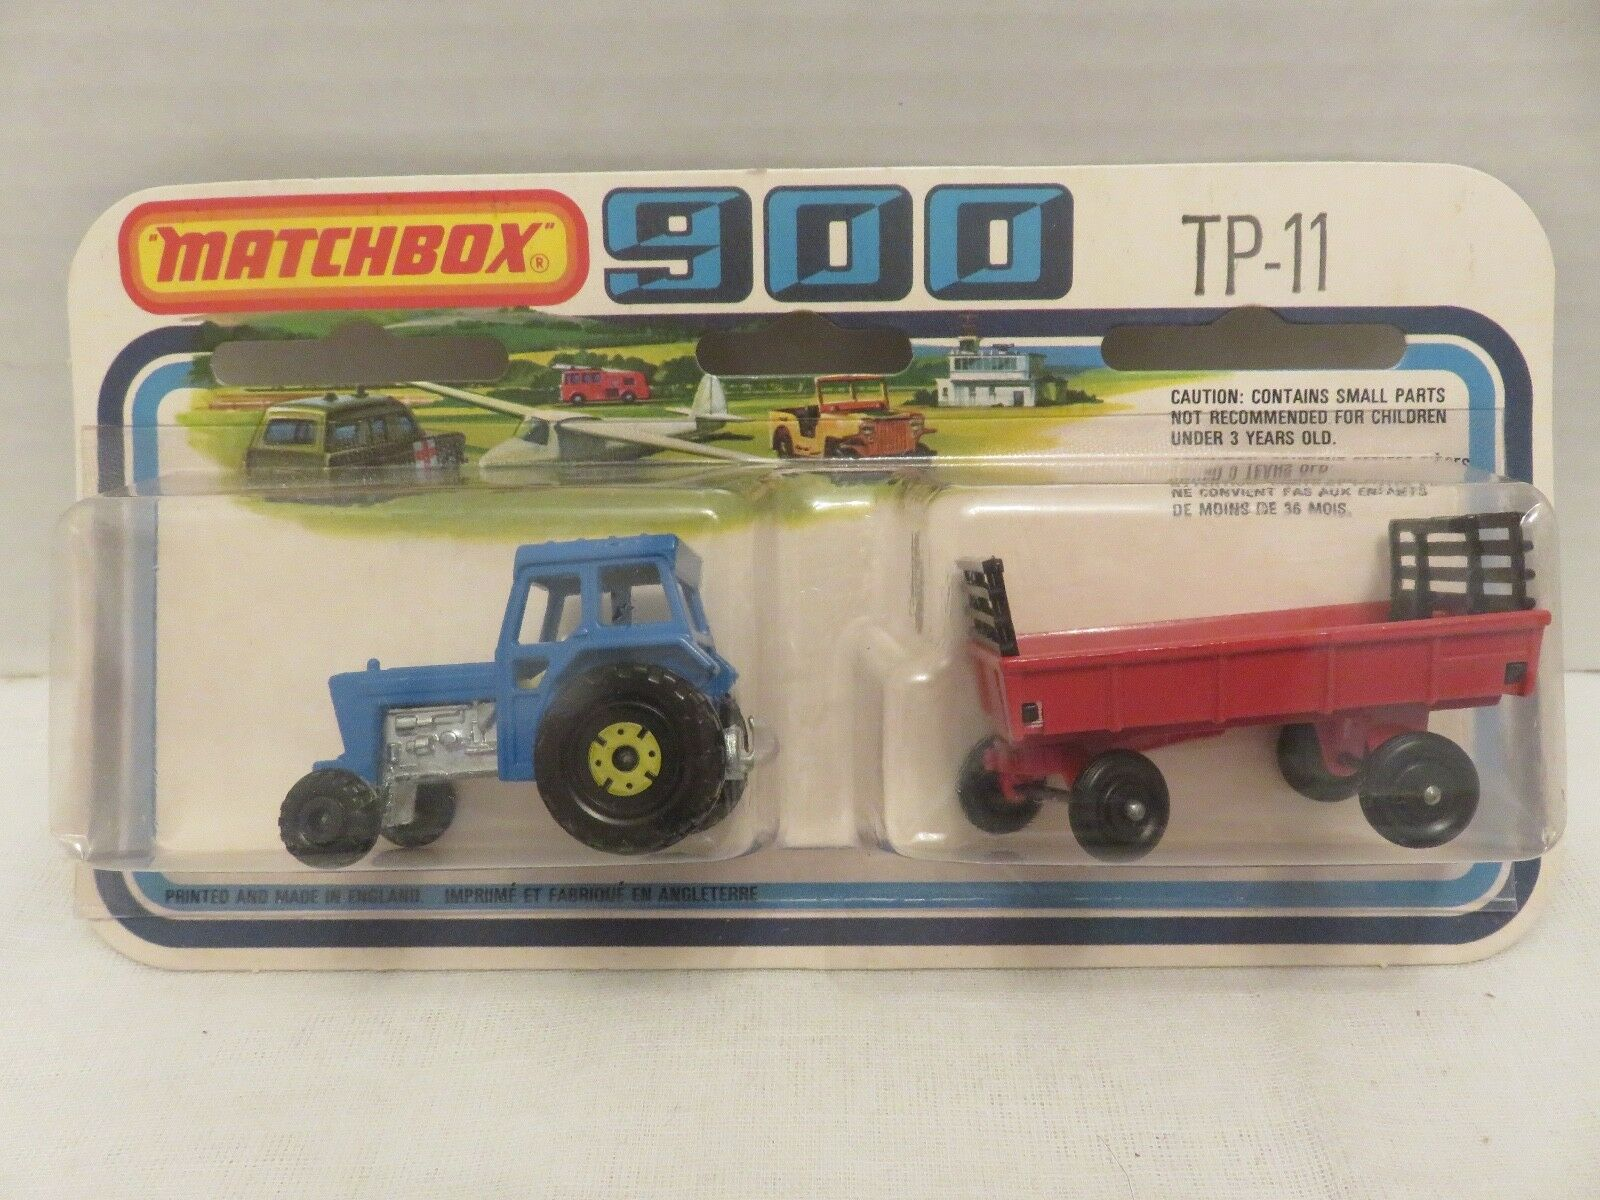 1978 Matchbox SuperFast 900 Ford Tractor blueE Hay Trailer Trailer Trailer RED TP-11 Die-Cast 135f01